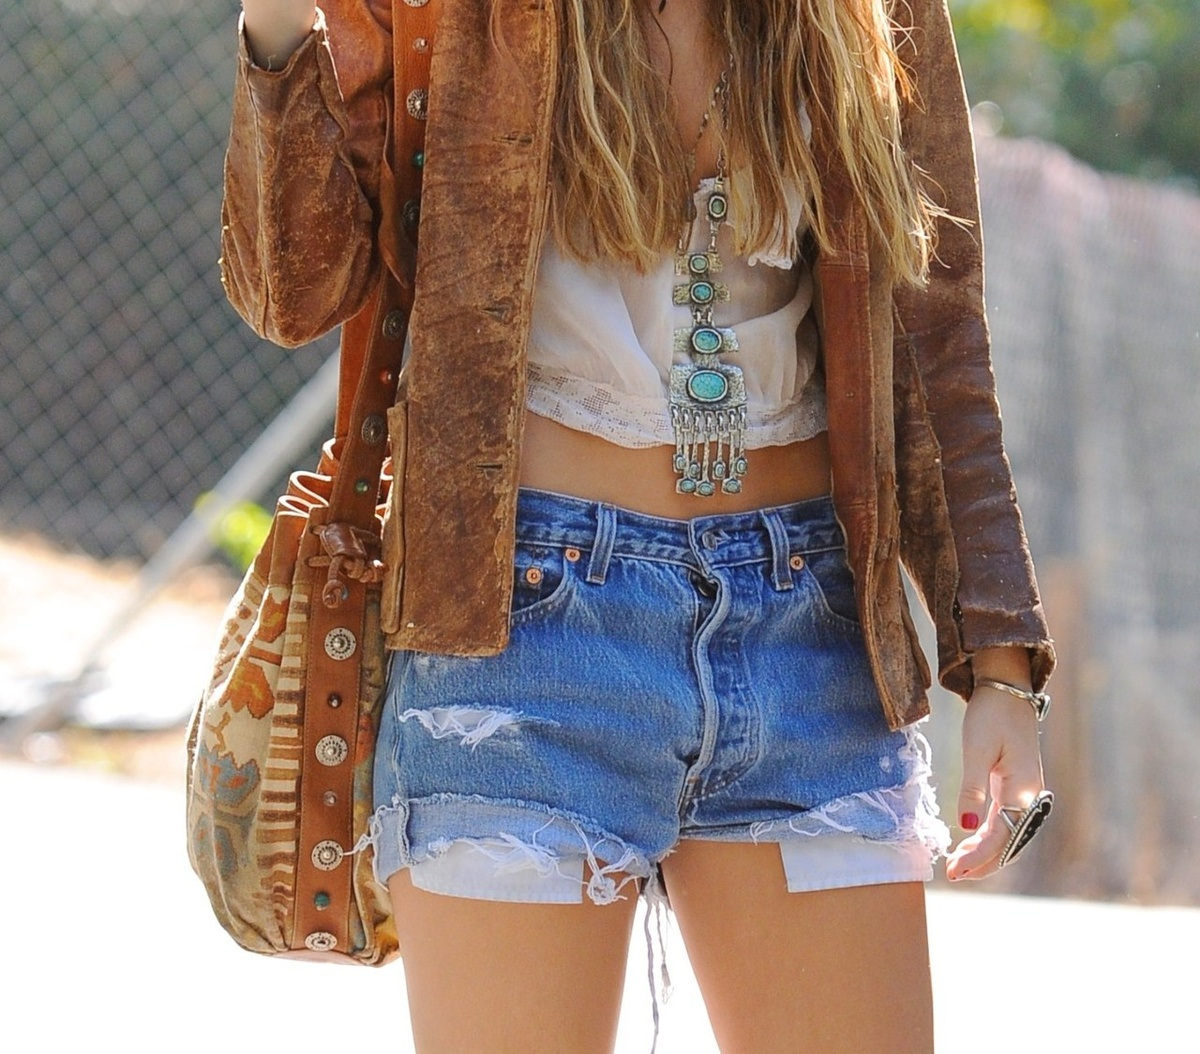 bohemian, boho, fashion, jewelry, miley cyrus